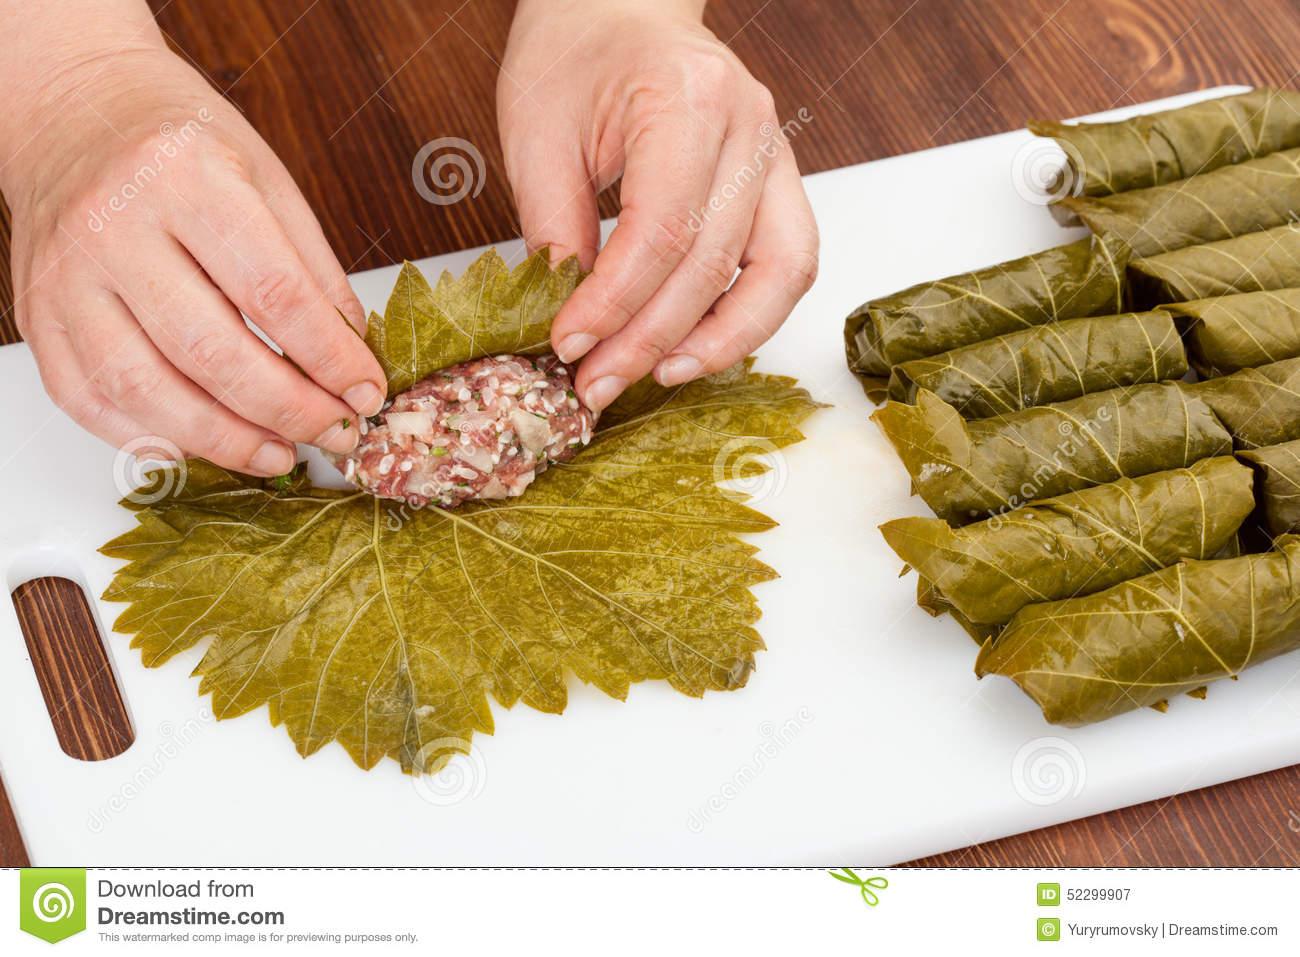 Cabbage Rolls With Grape Leaves Stock Photo.